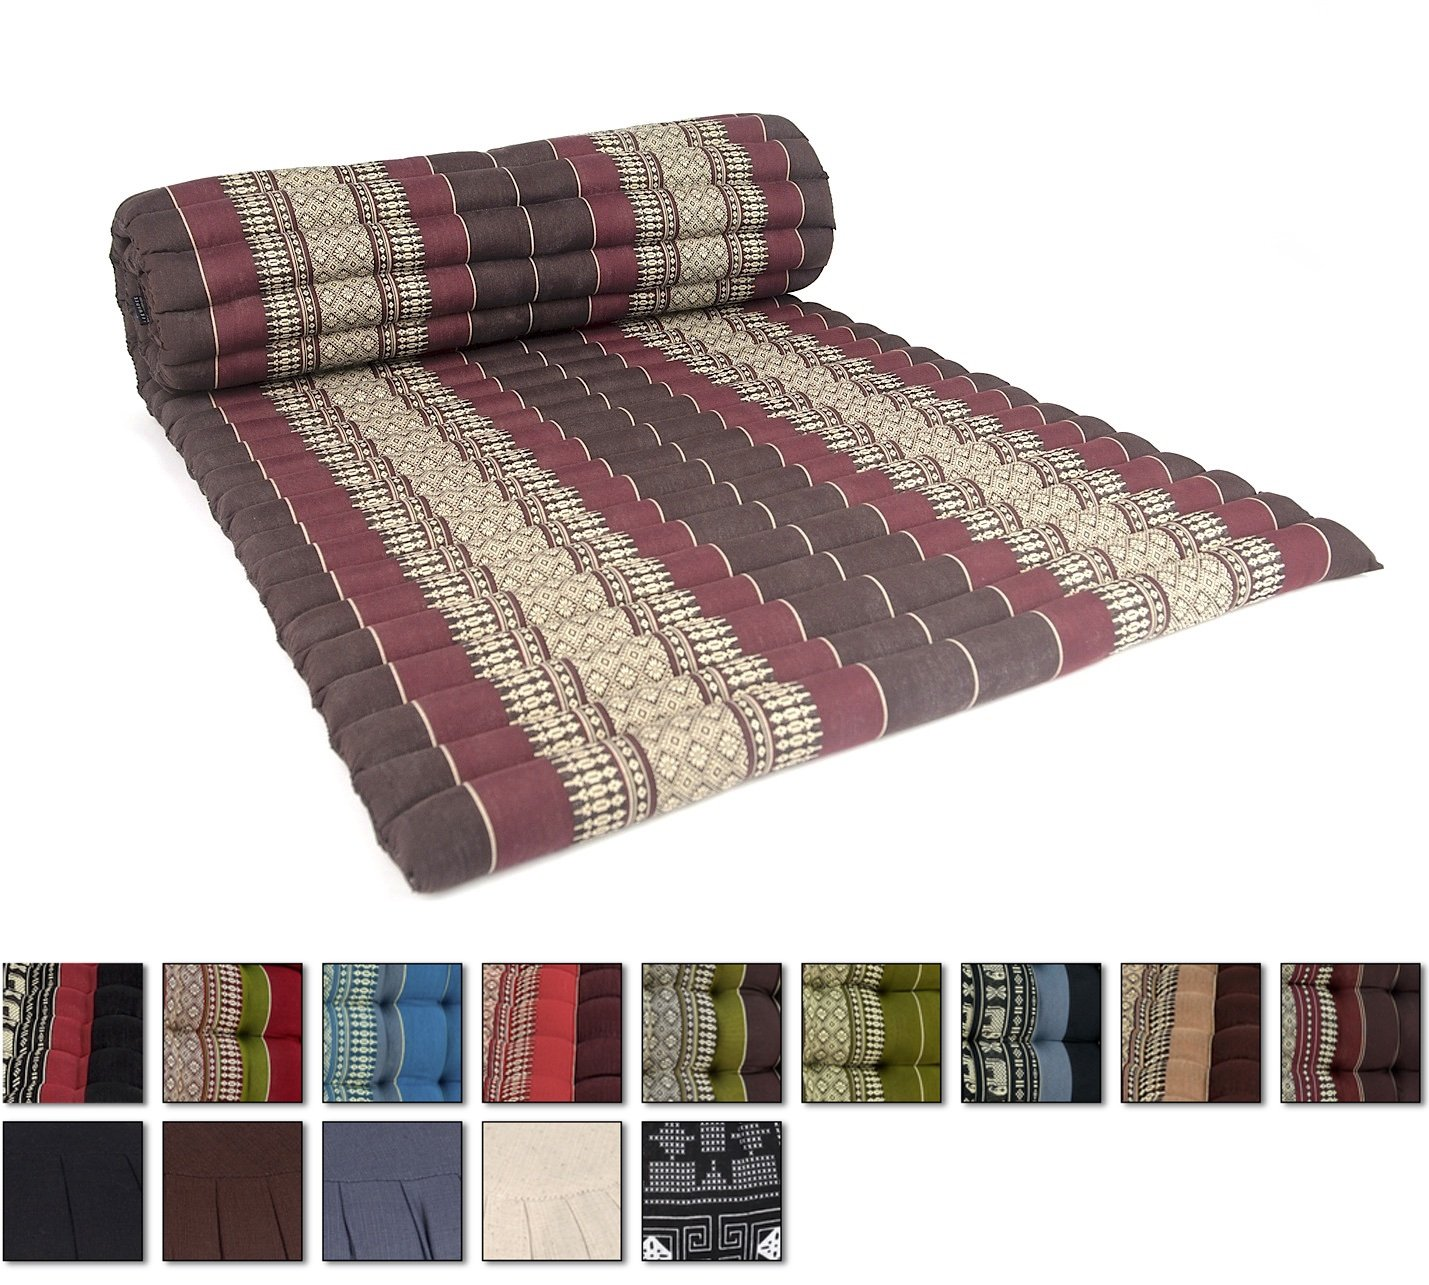 Leewadee Roll Up Thai Mattress, 79x30x2 inches, Kapok Fabric, Brown Red, Premium Double Stitched by Leewadee